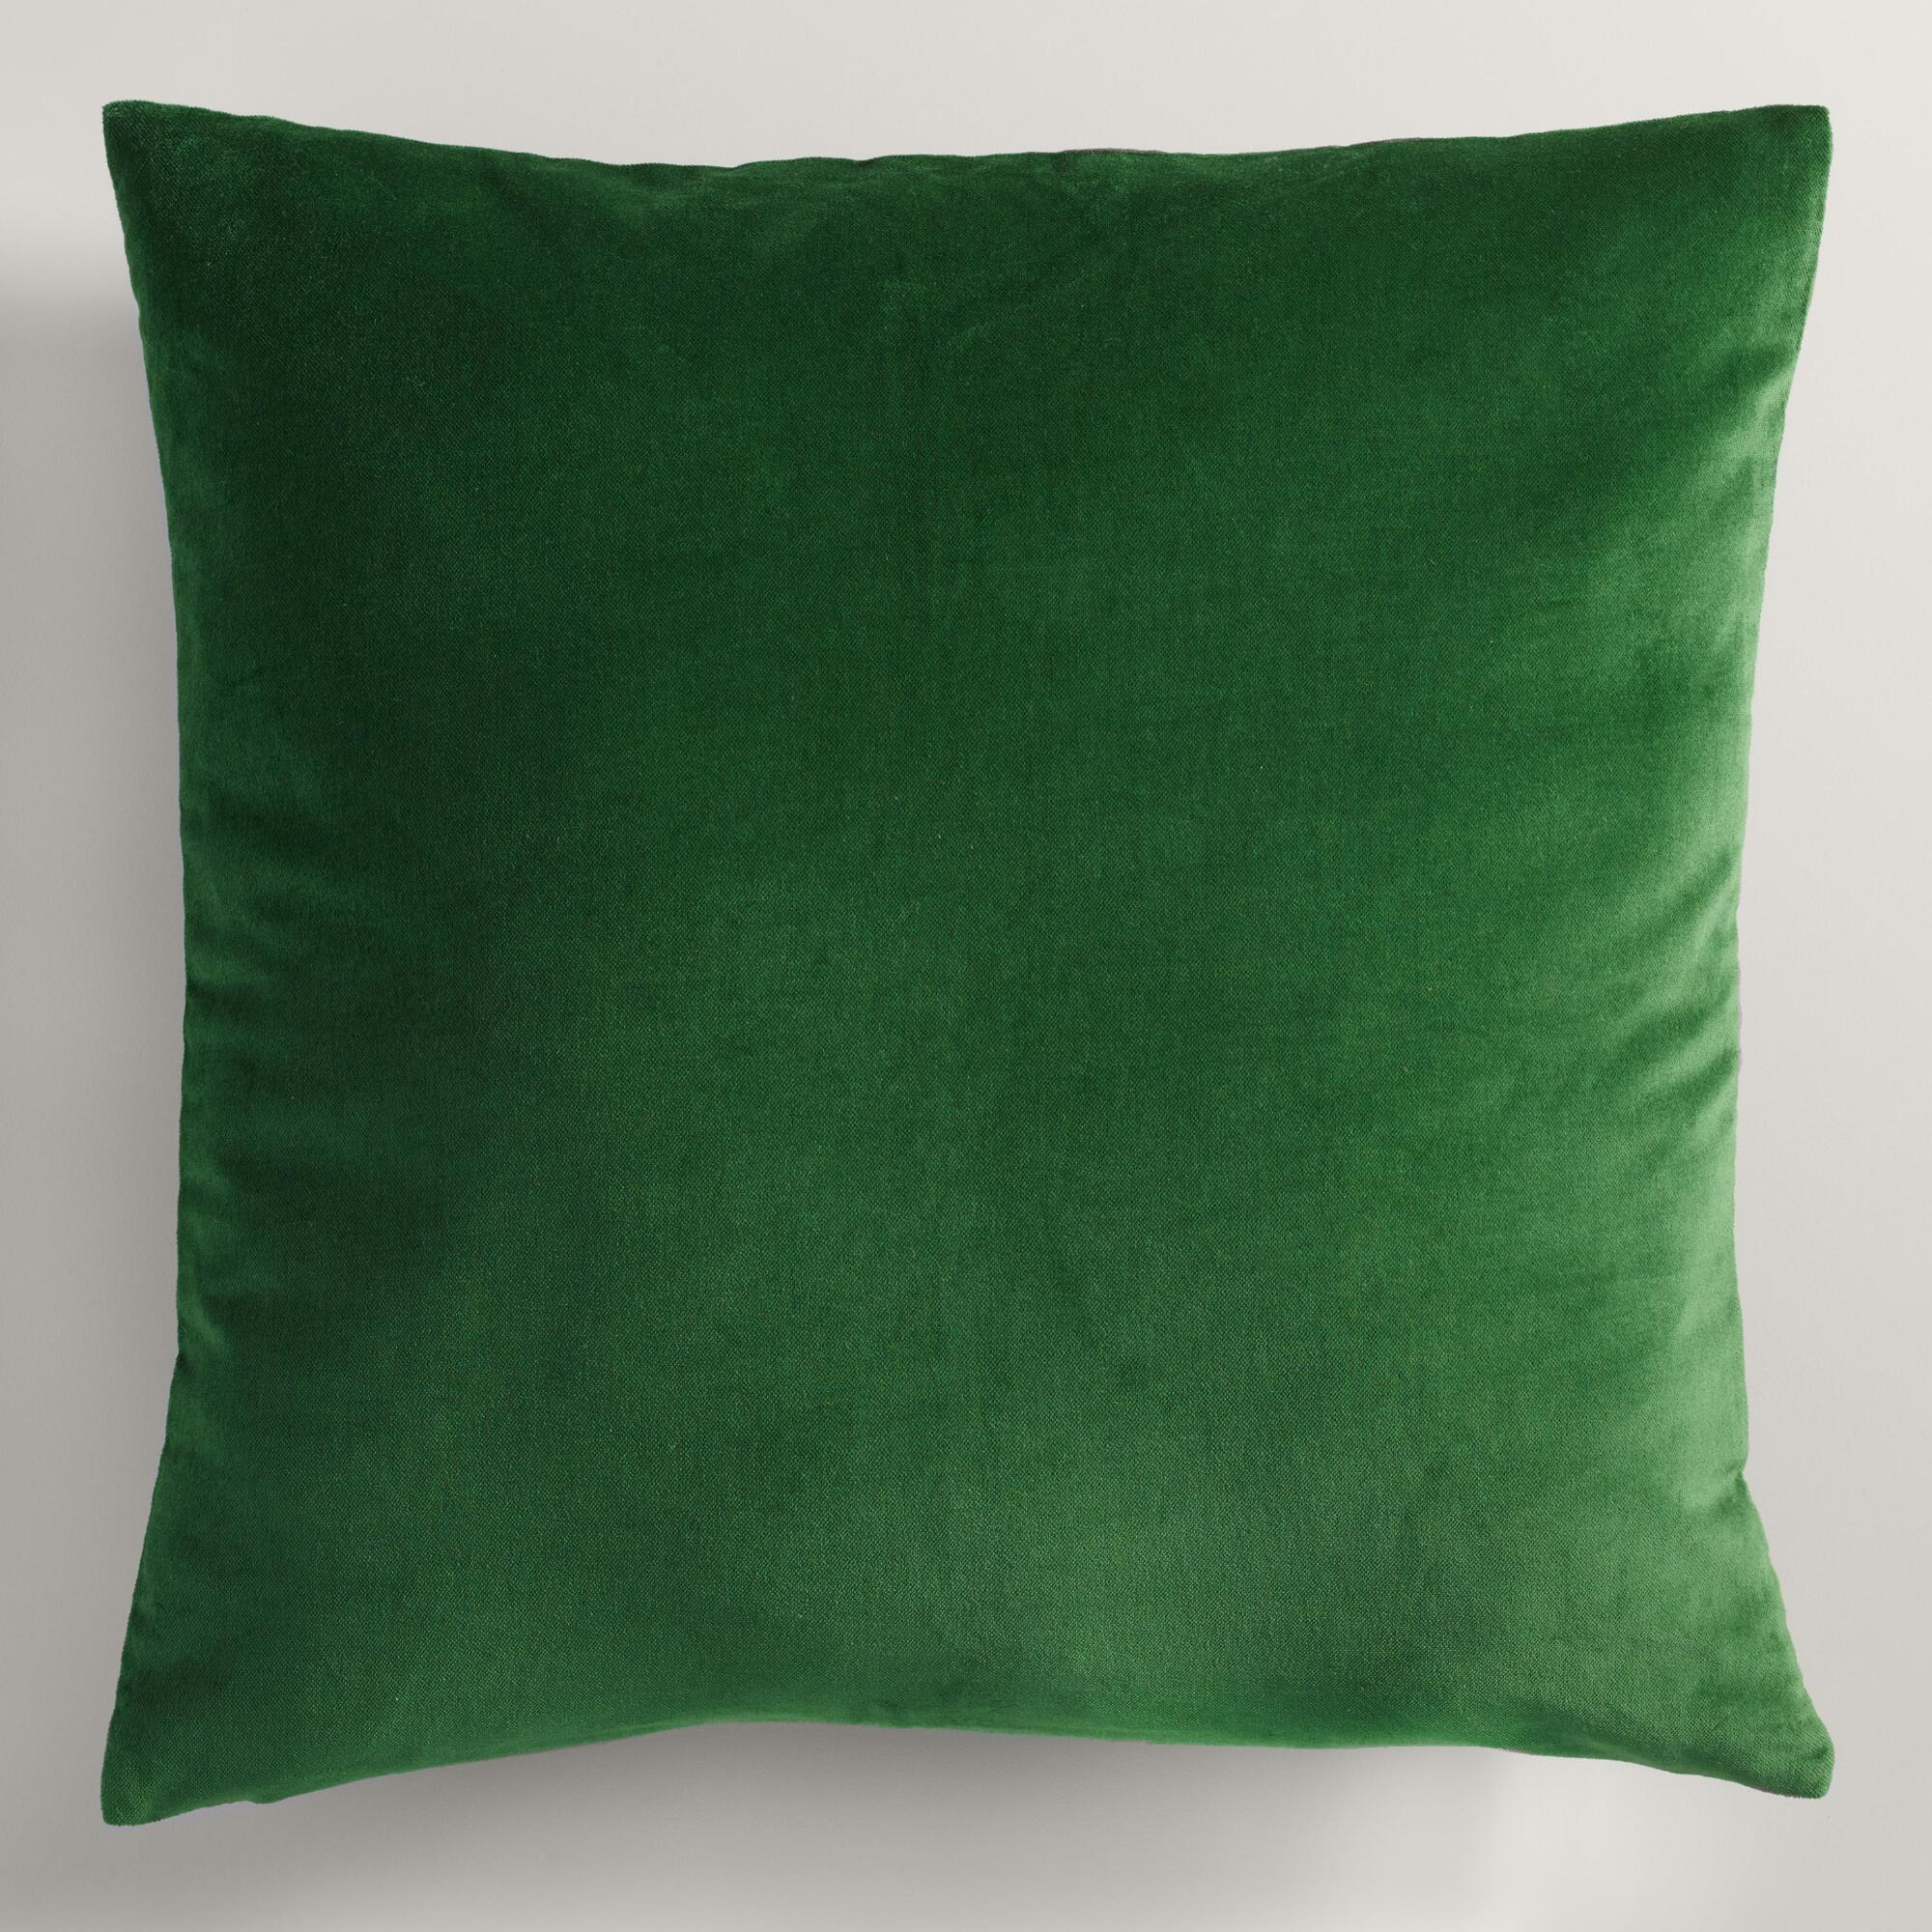 Decorative Pillows For Bed Green : Green Velvet Throw Pillow World Market